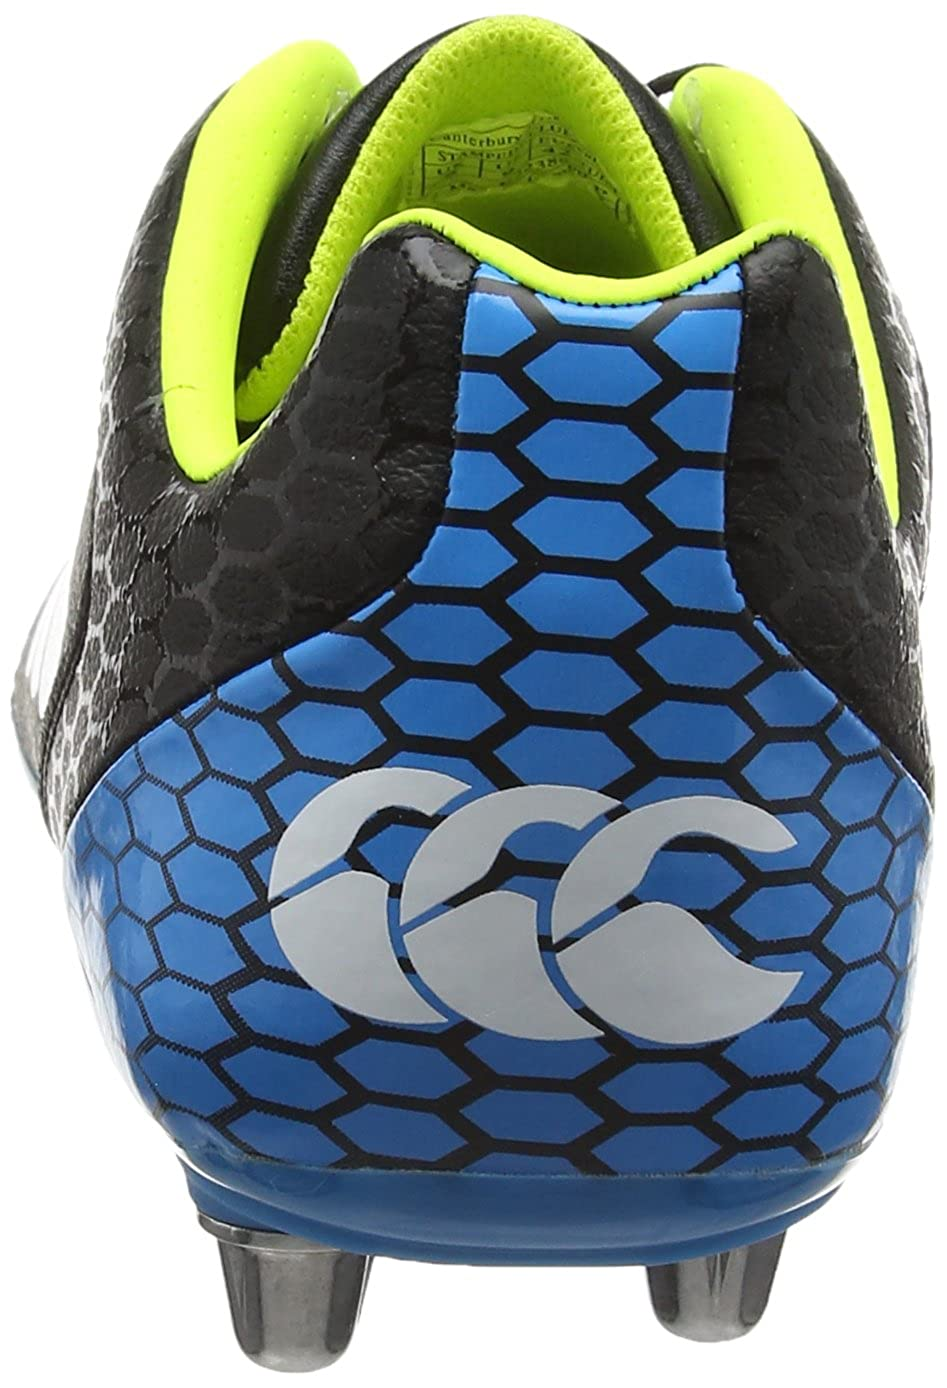 0b3ad0a2909a Canterbury Men Stampede Club 8 Stud Rugby Boots, Black (989  Yellow/Blue/White), 8.5 UK 42 1/2 EU: Amazon.co.uk: Shoes & Bags